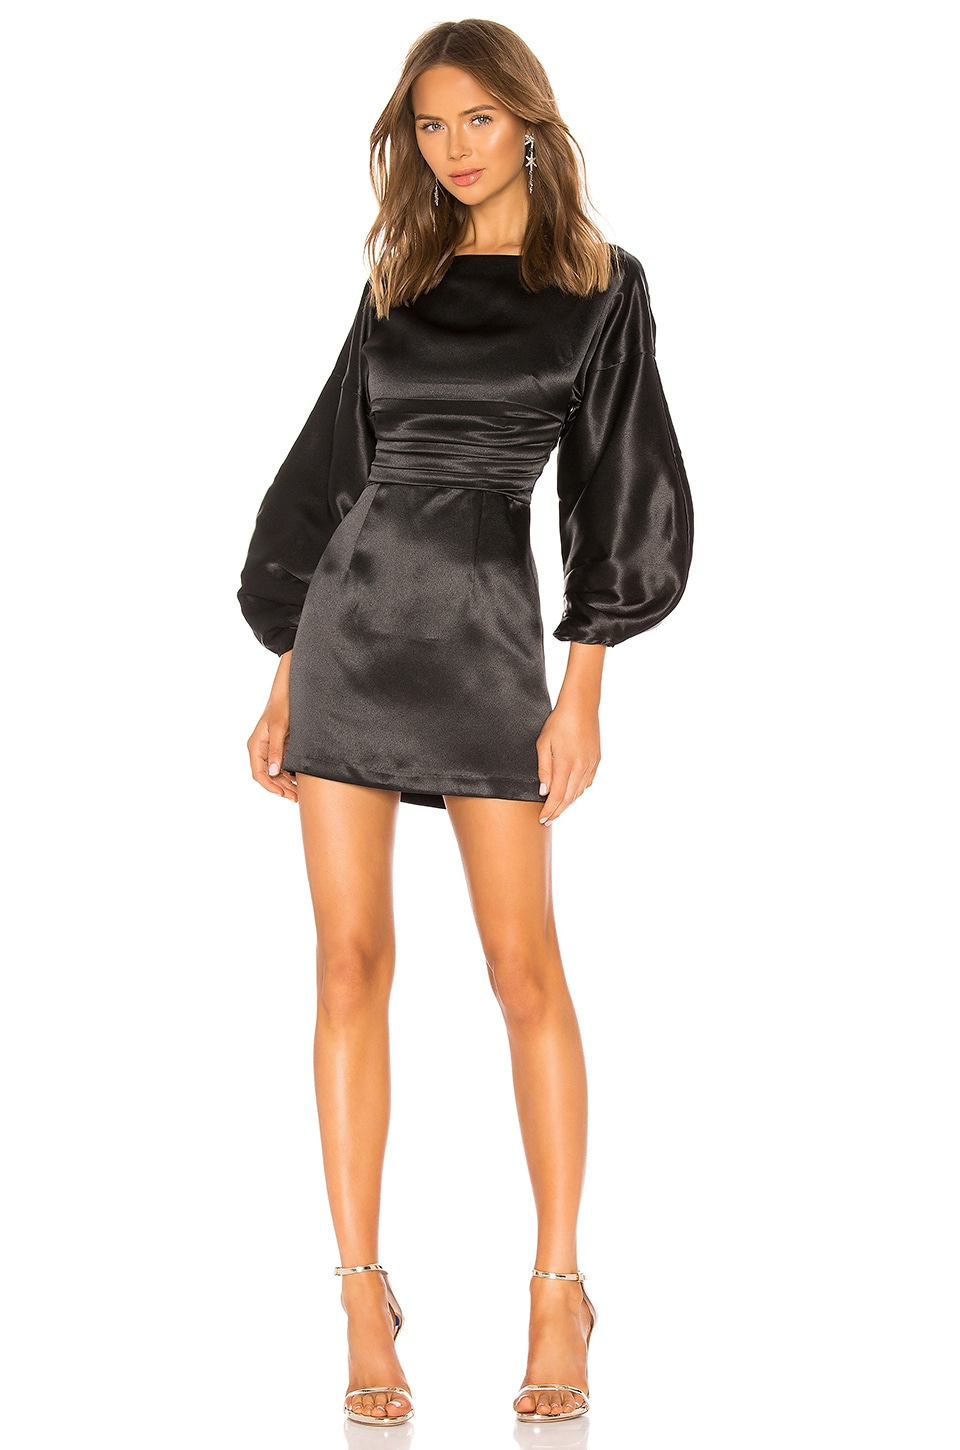 h:ours Cristiano Mini Dress in Black Noir